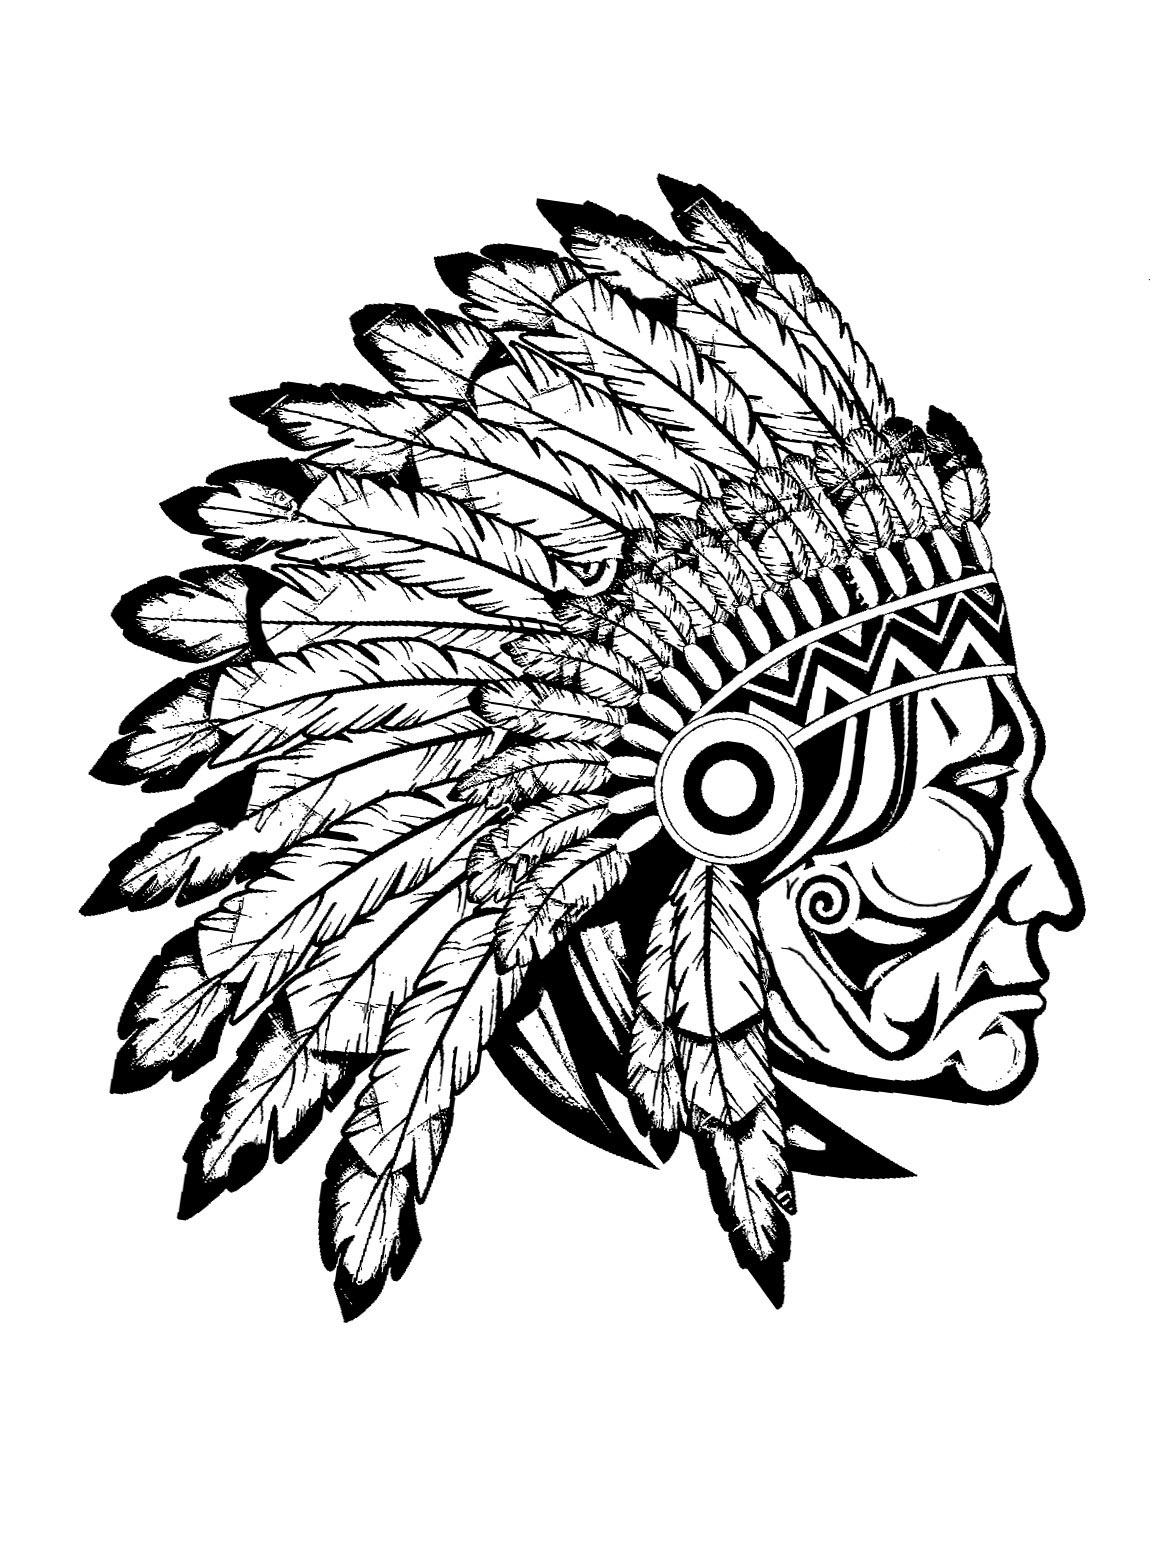 native american coloring pages for adults Indian native chief profile   Native American Adult Coloring Pages native american coloring pages for adults